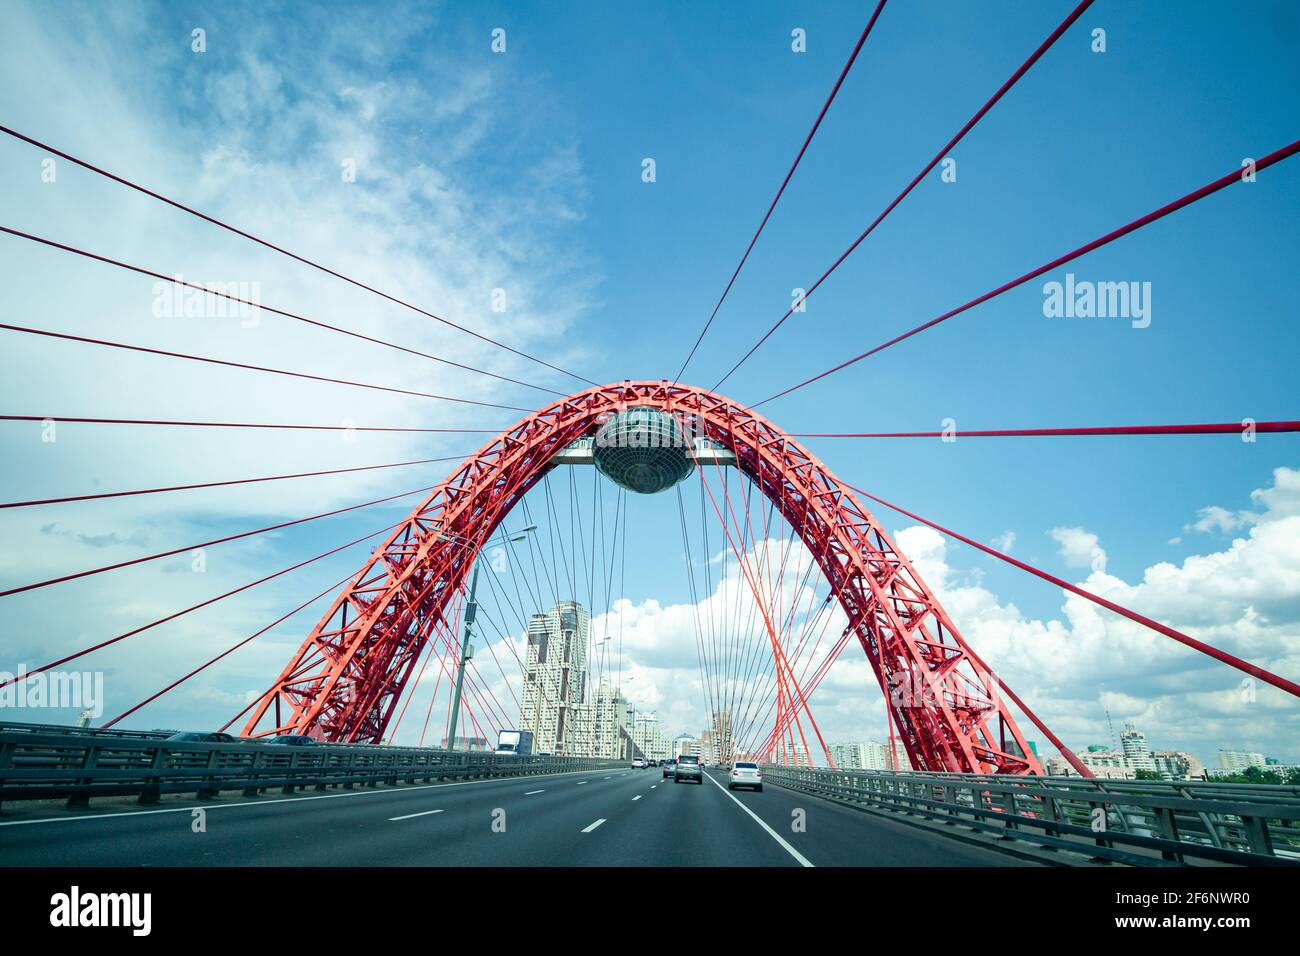 Moscow, Russia - July 12, 2020: Cable-stayed red bridge in Moscow. Unique engineering structure. Stock Photo